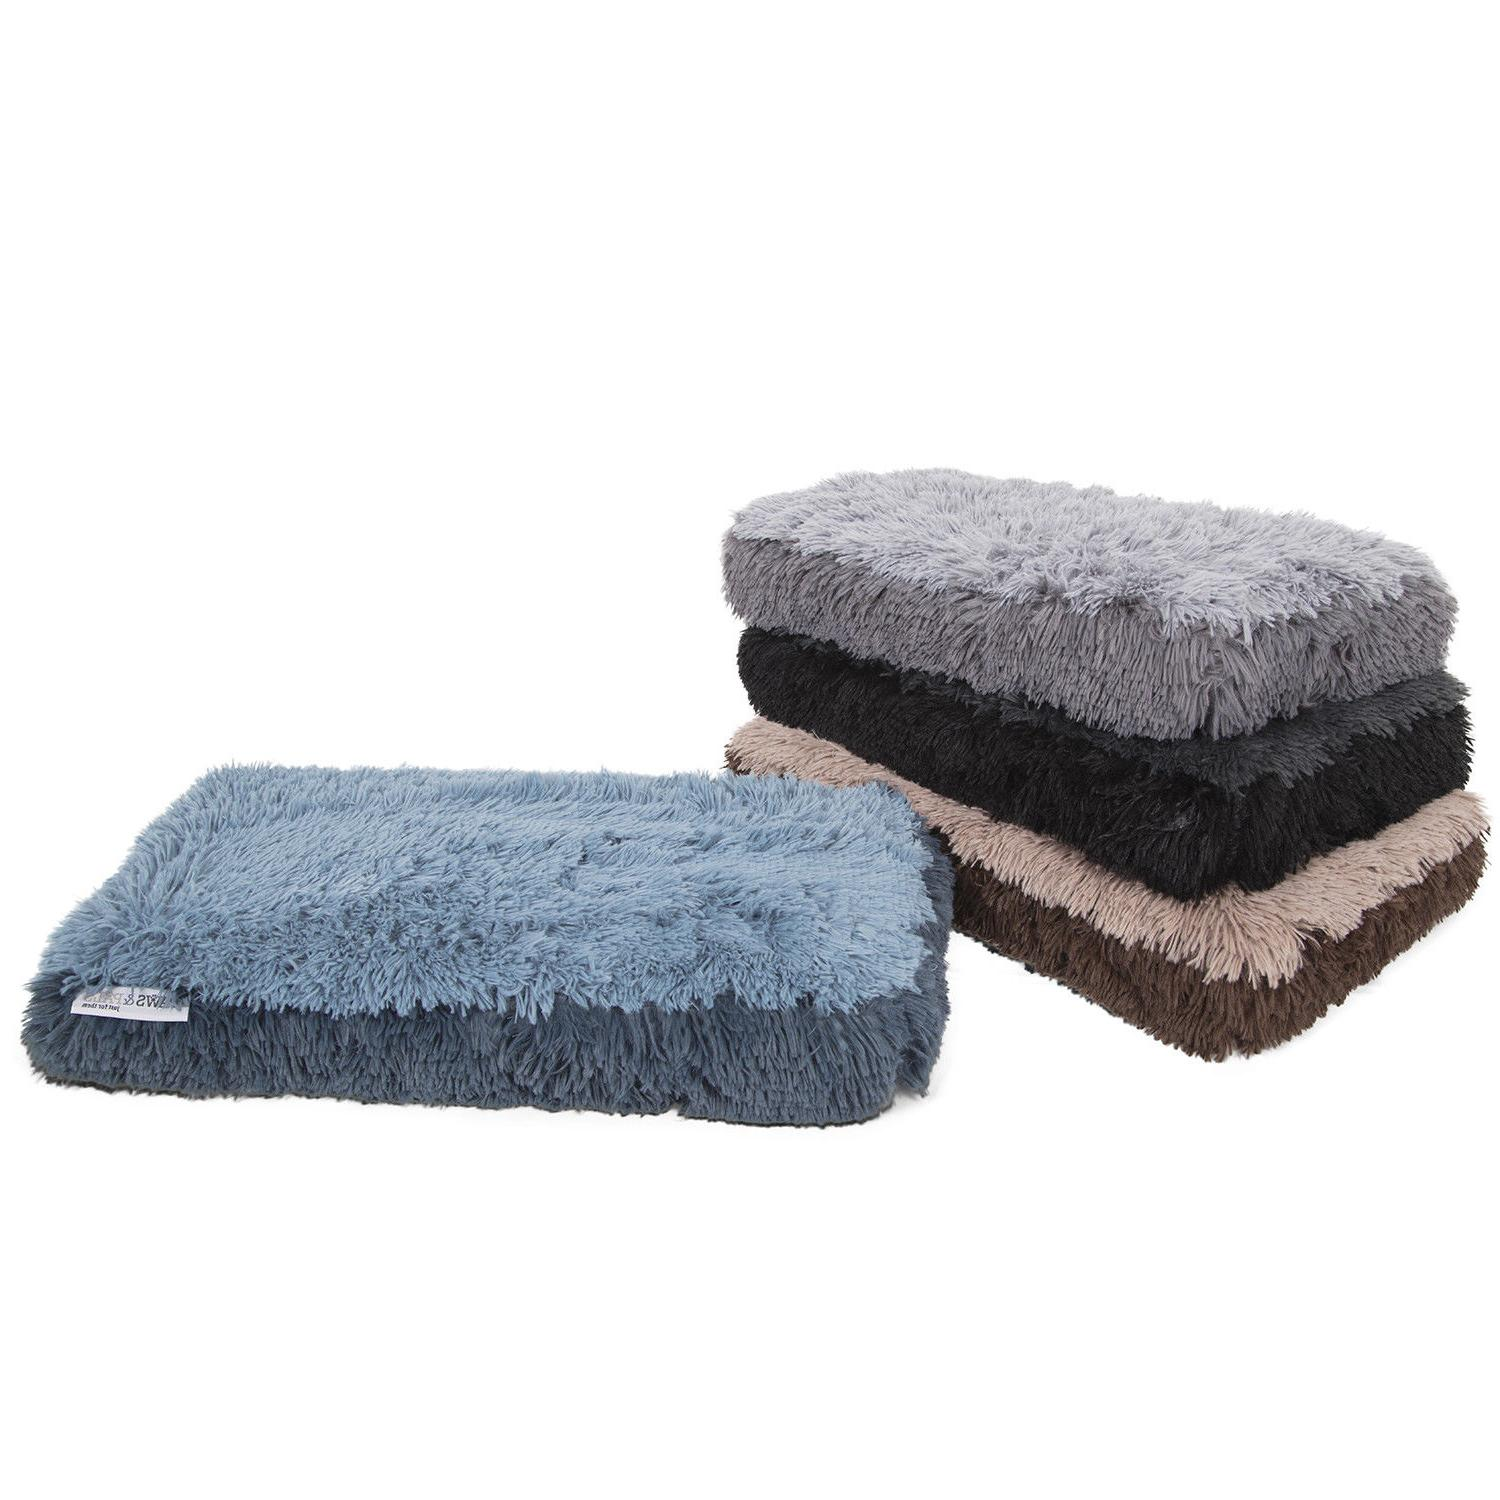 Fuzzy Dog Bed Pet Lounger Deluxe Cushion Crate Foam Soft War